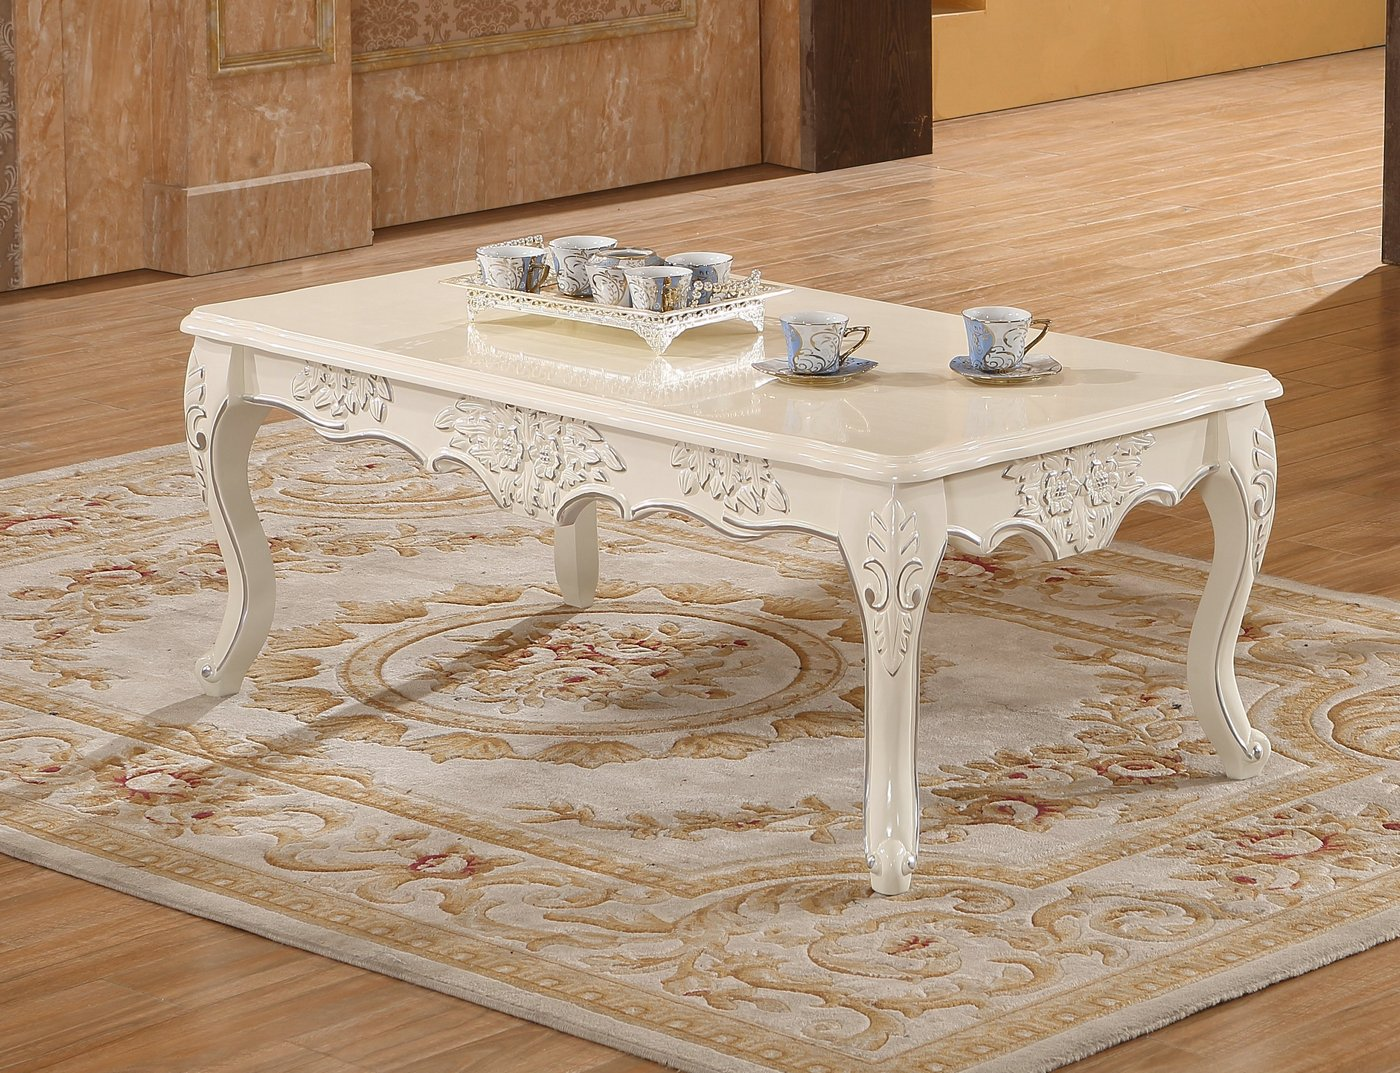 serena opulent traditional wood coffee table in pearl white gold. Black Bedroom Furniture Sets. Home Design Ideas